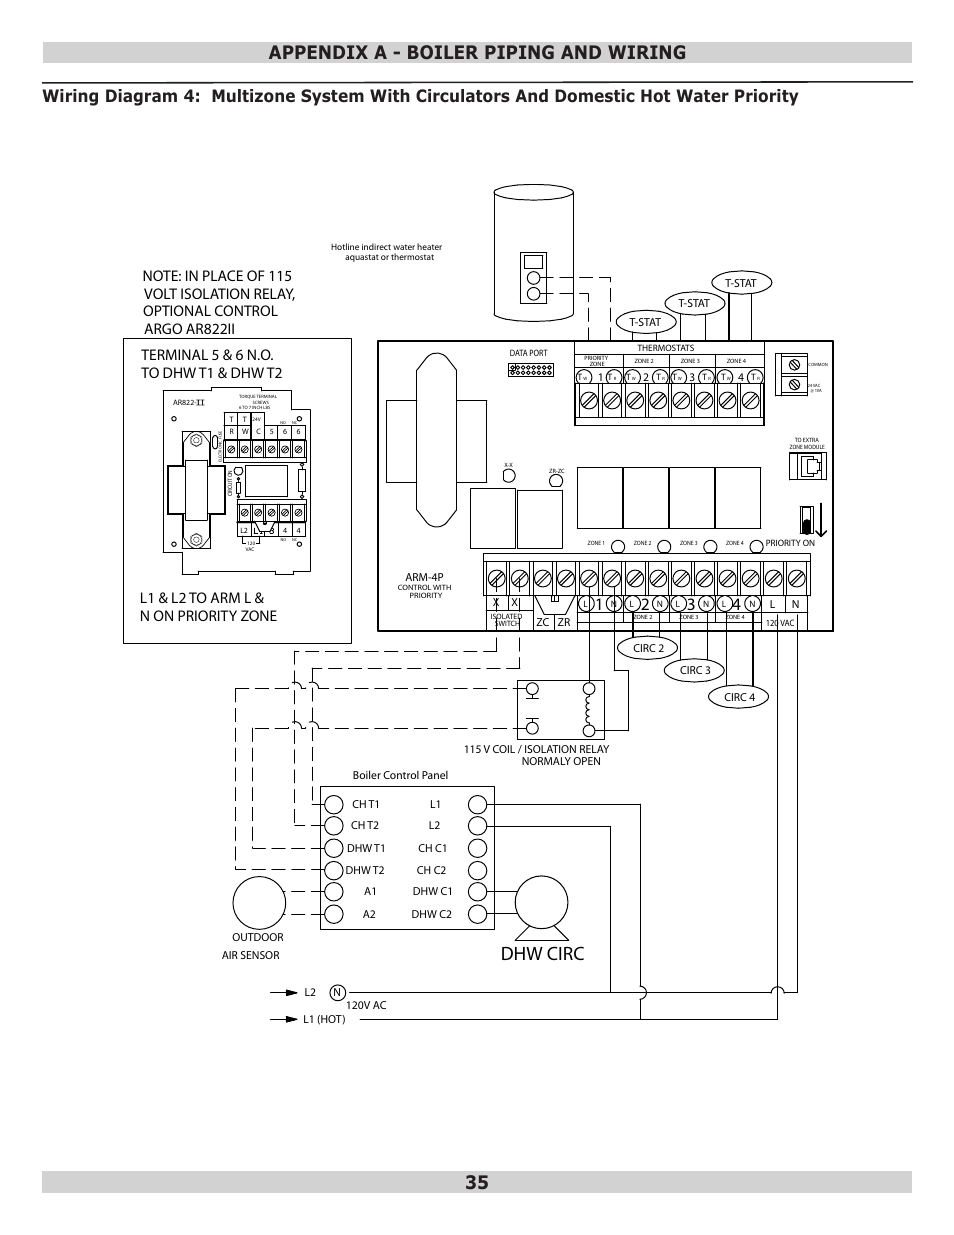 medium resolution of dhw circ appendix a boiler piping and wiring dunkirk q95m 200 modulating condensing boiler user manual page 35 52